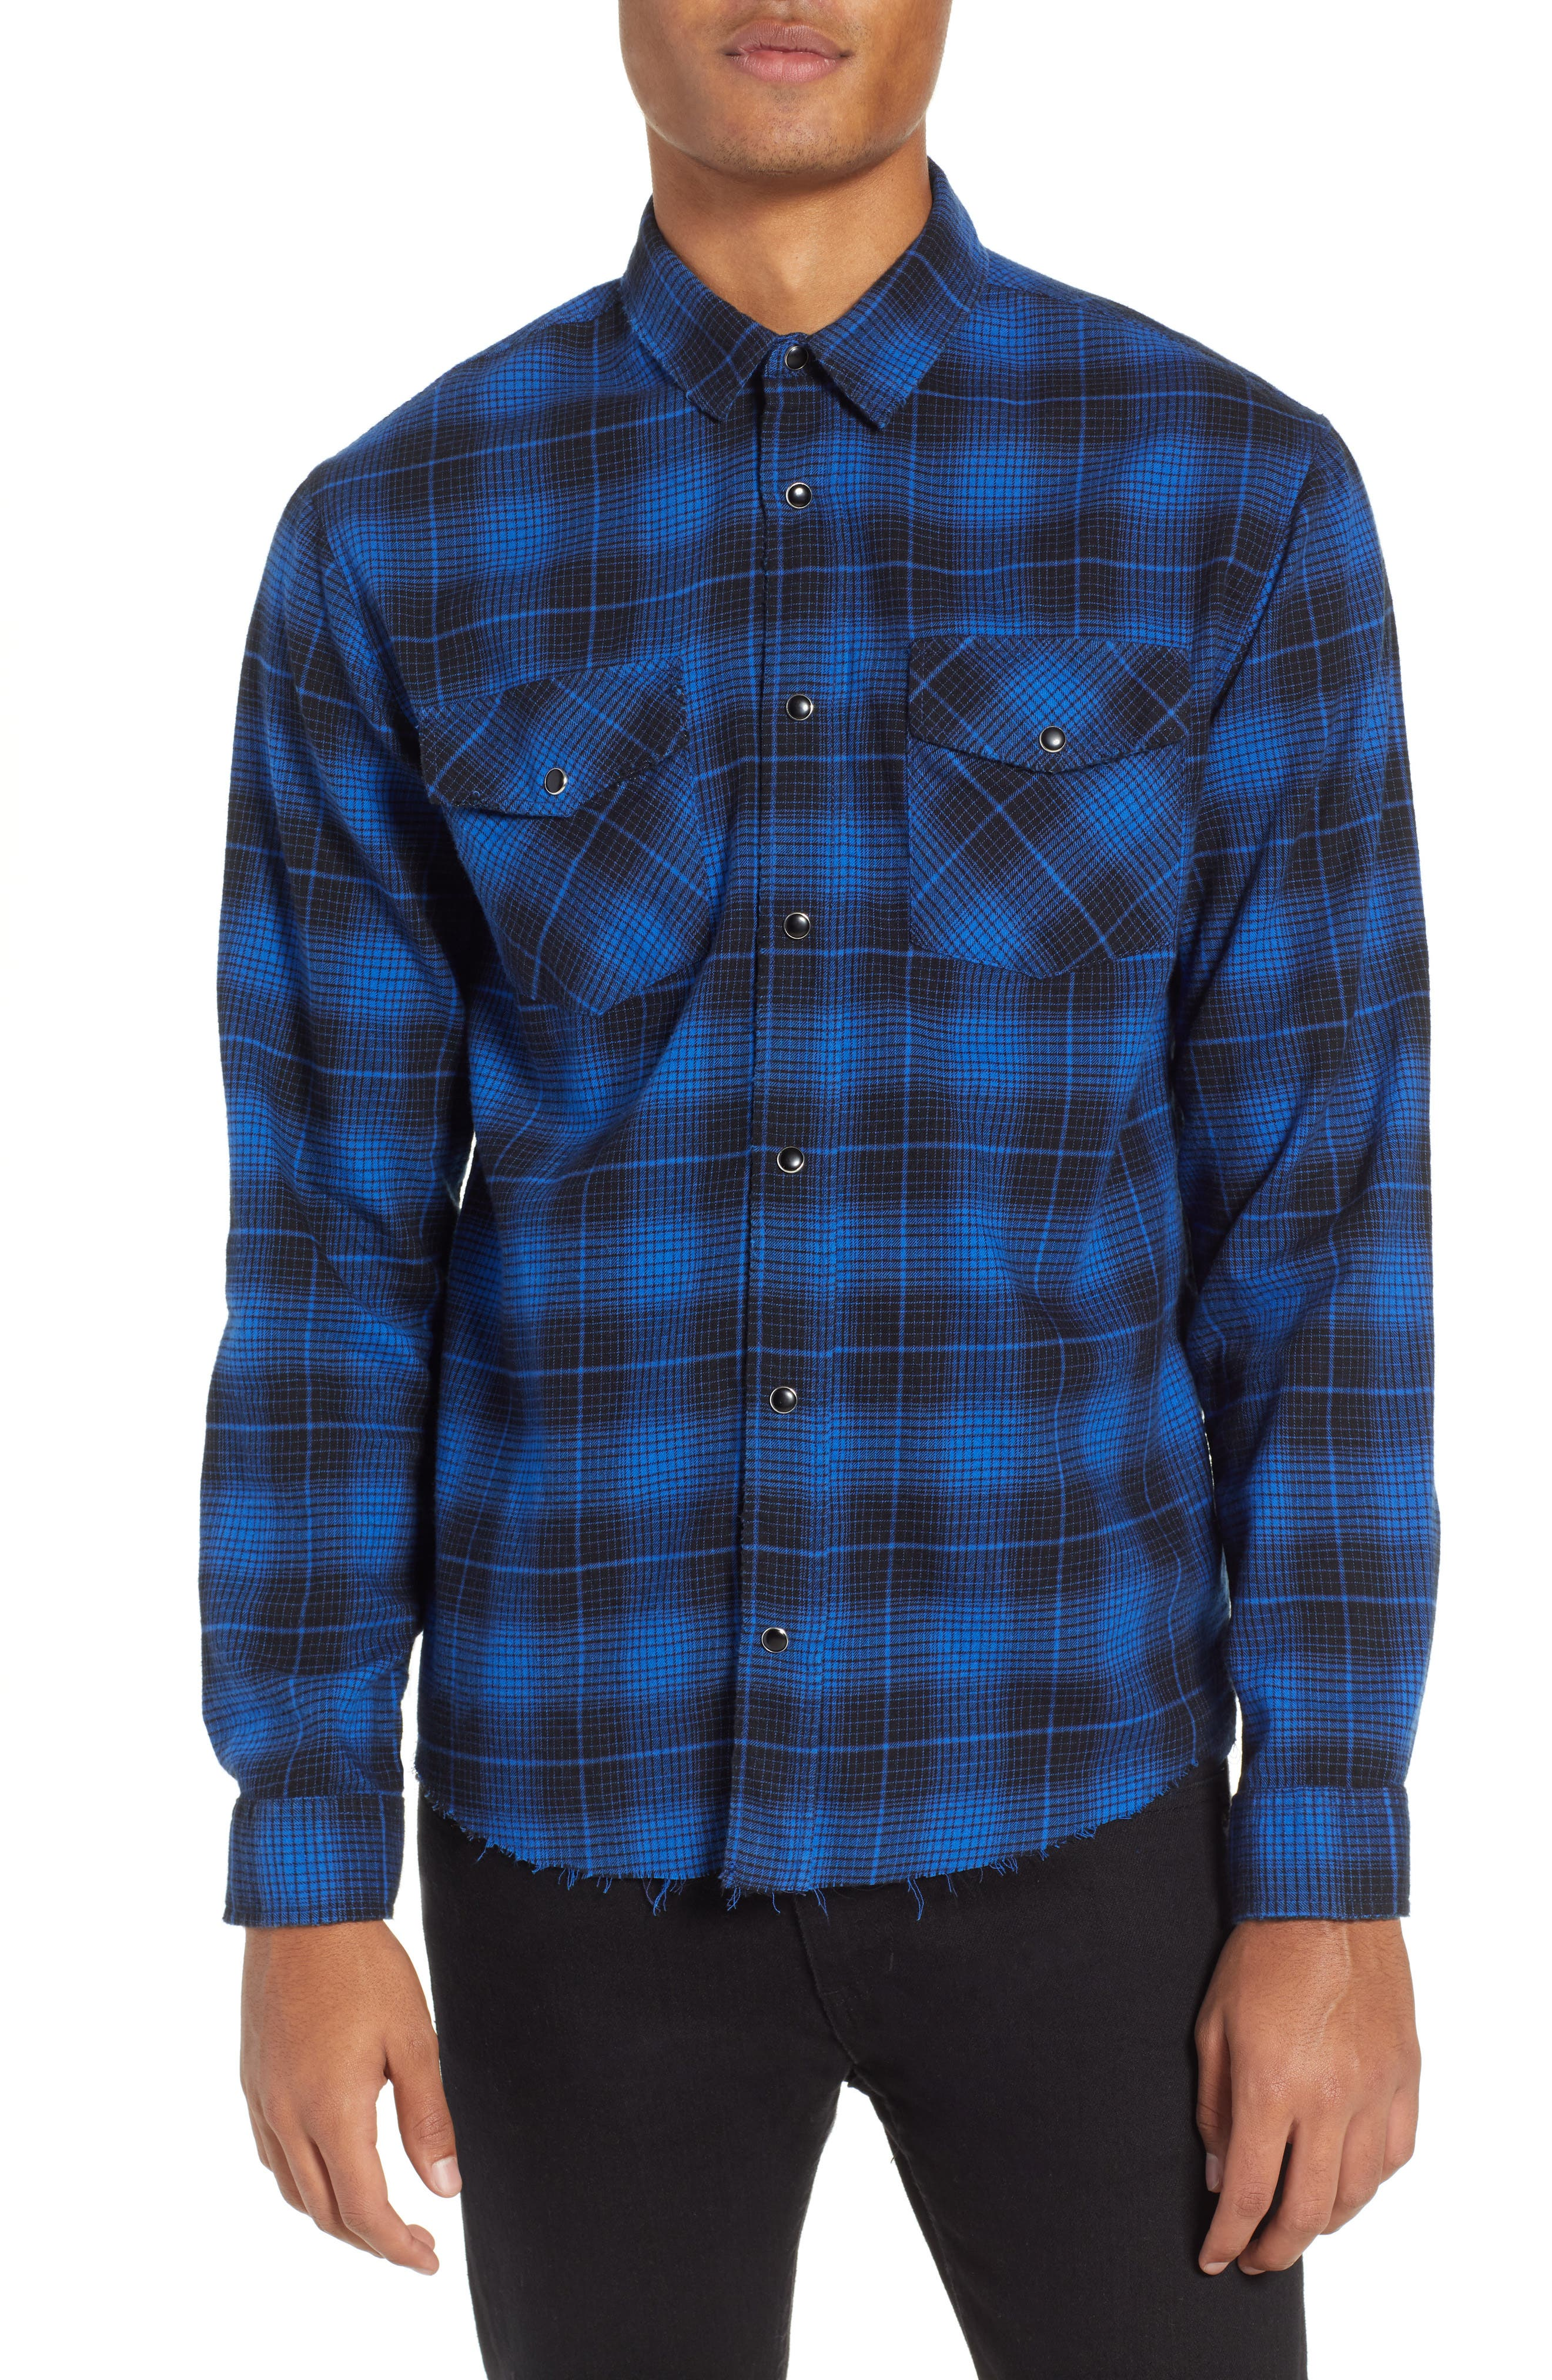 THE KOOPLES Plaid Flannel Shirt, Main, color, ROYAL BLUE / BLACK